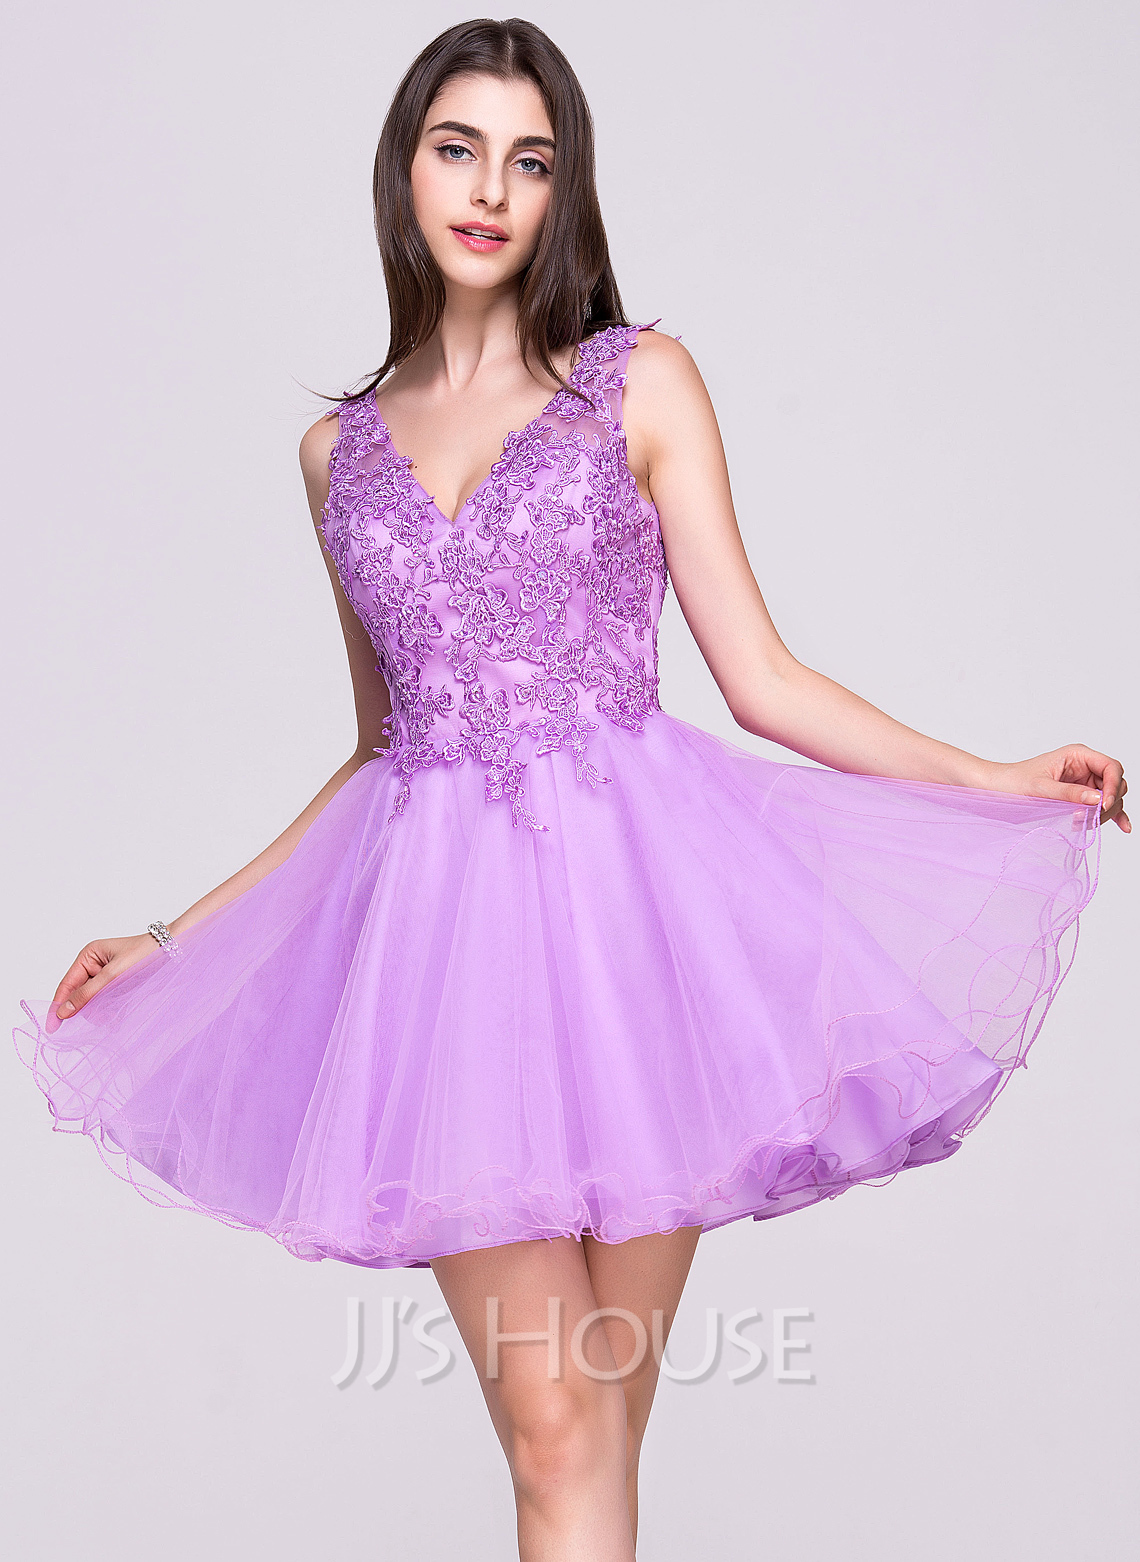 ca59afd71edd A-Line/Princess V-neck Short/Mini Tulle Lace Homecoming Dress With. Loading  zoom